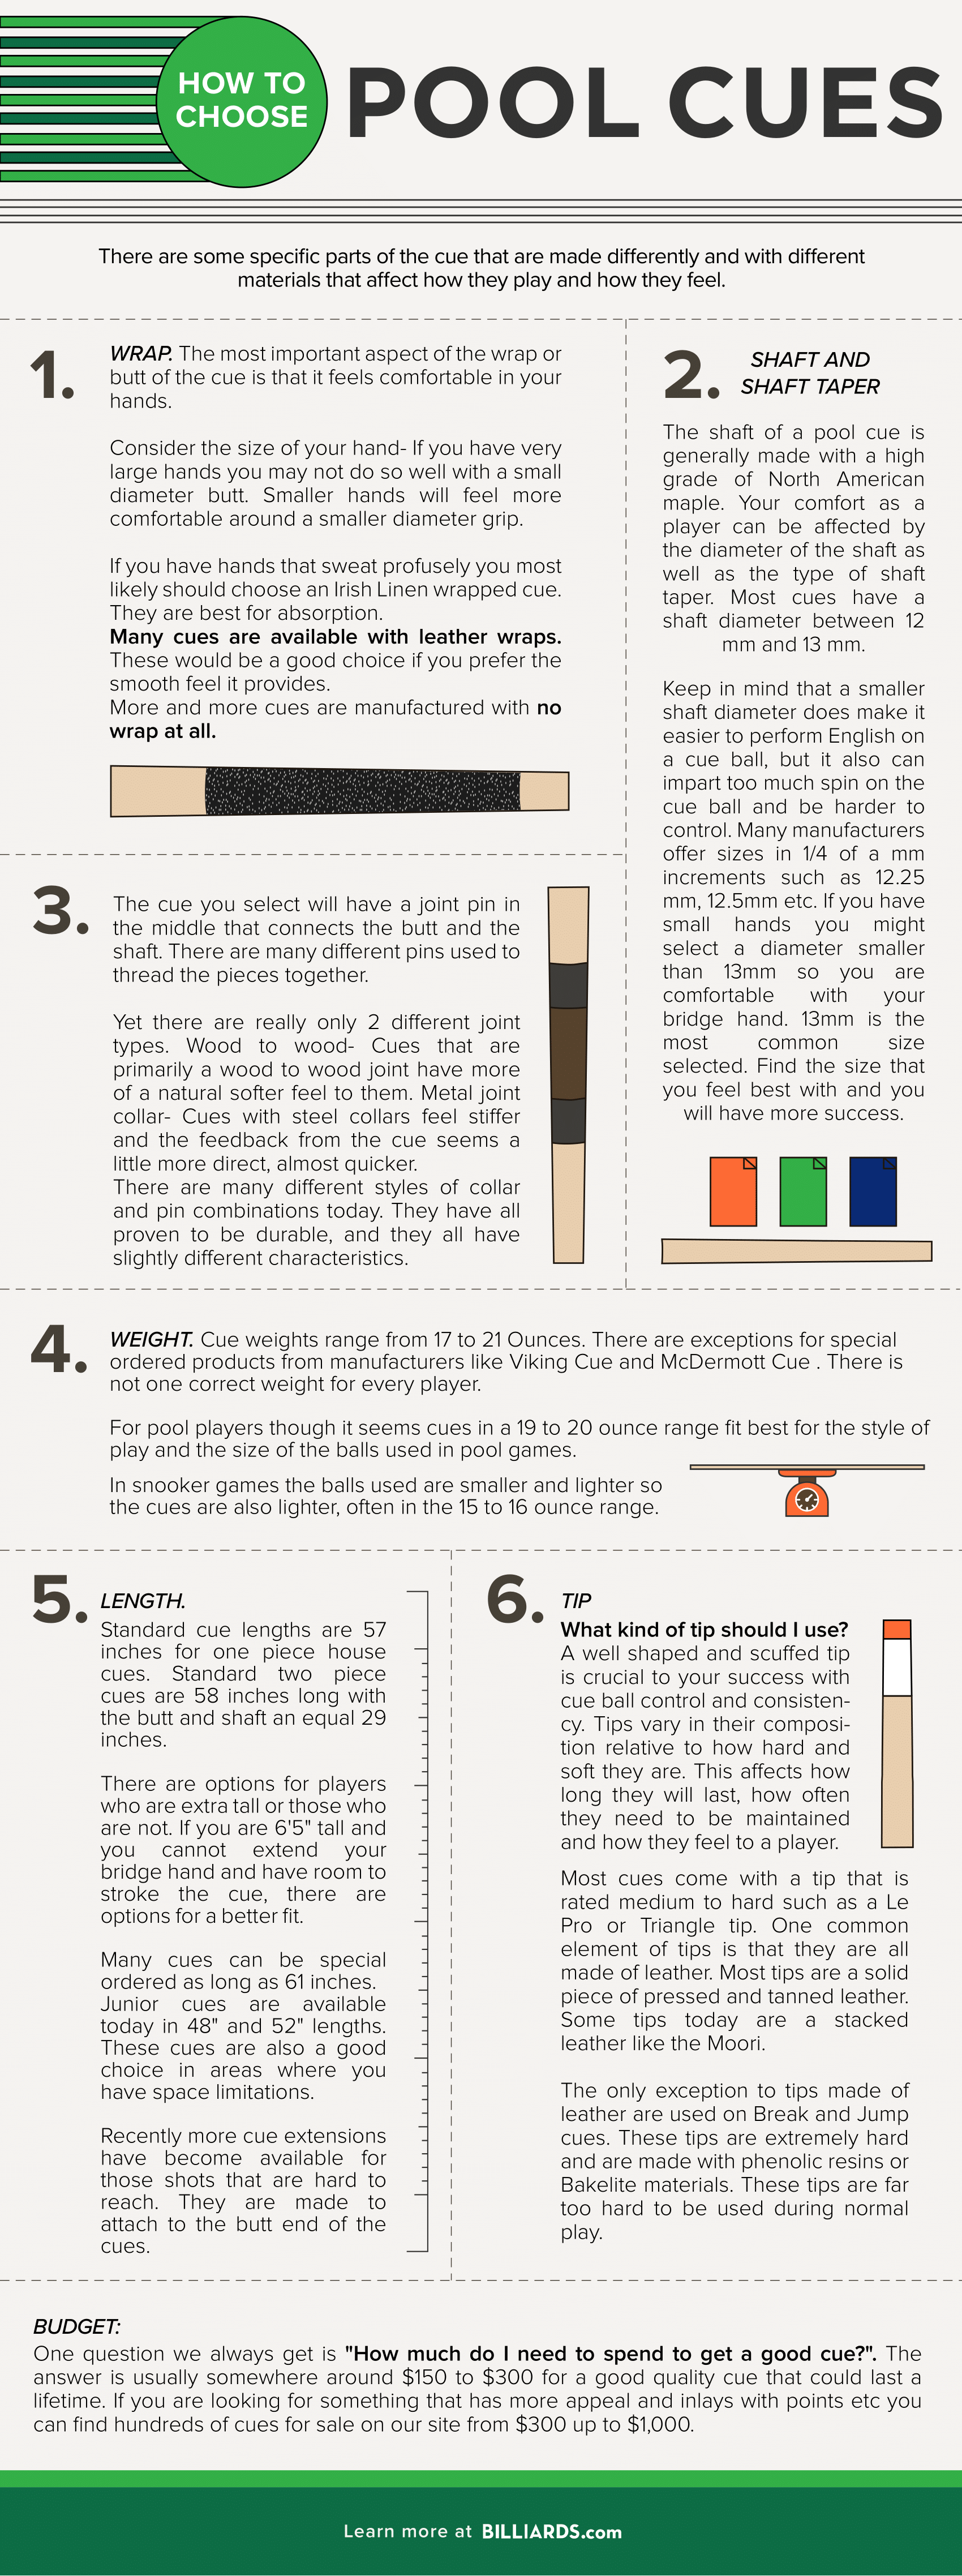 How to Choose a Pool Cue Inforgraphic